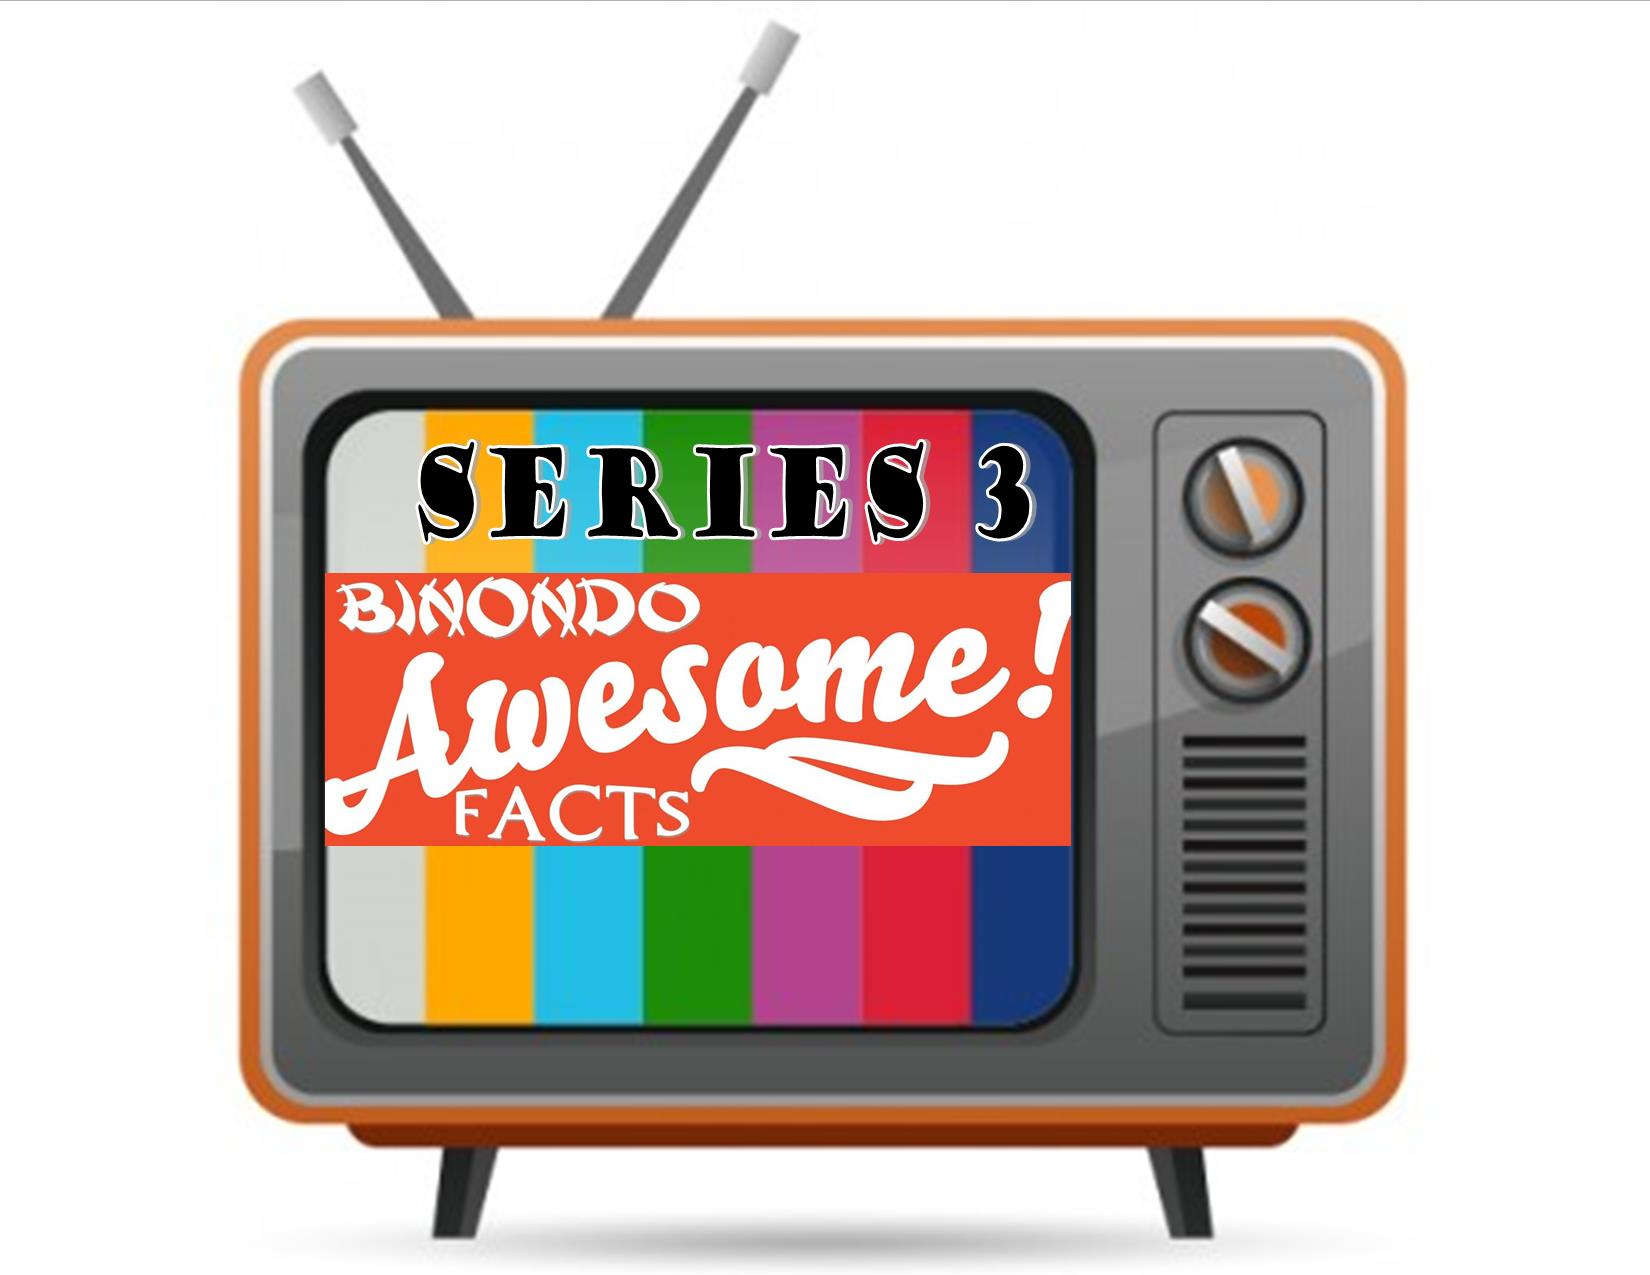 Series 3 of Binondo Awesome Facts – The Best of Binondo